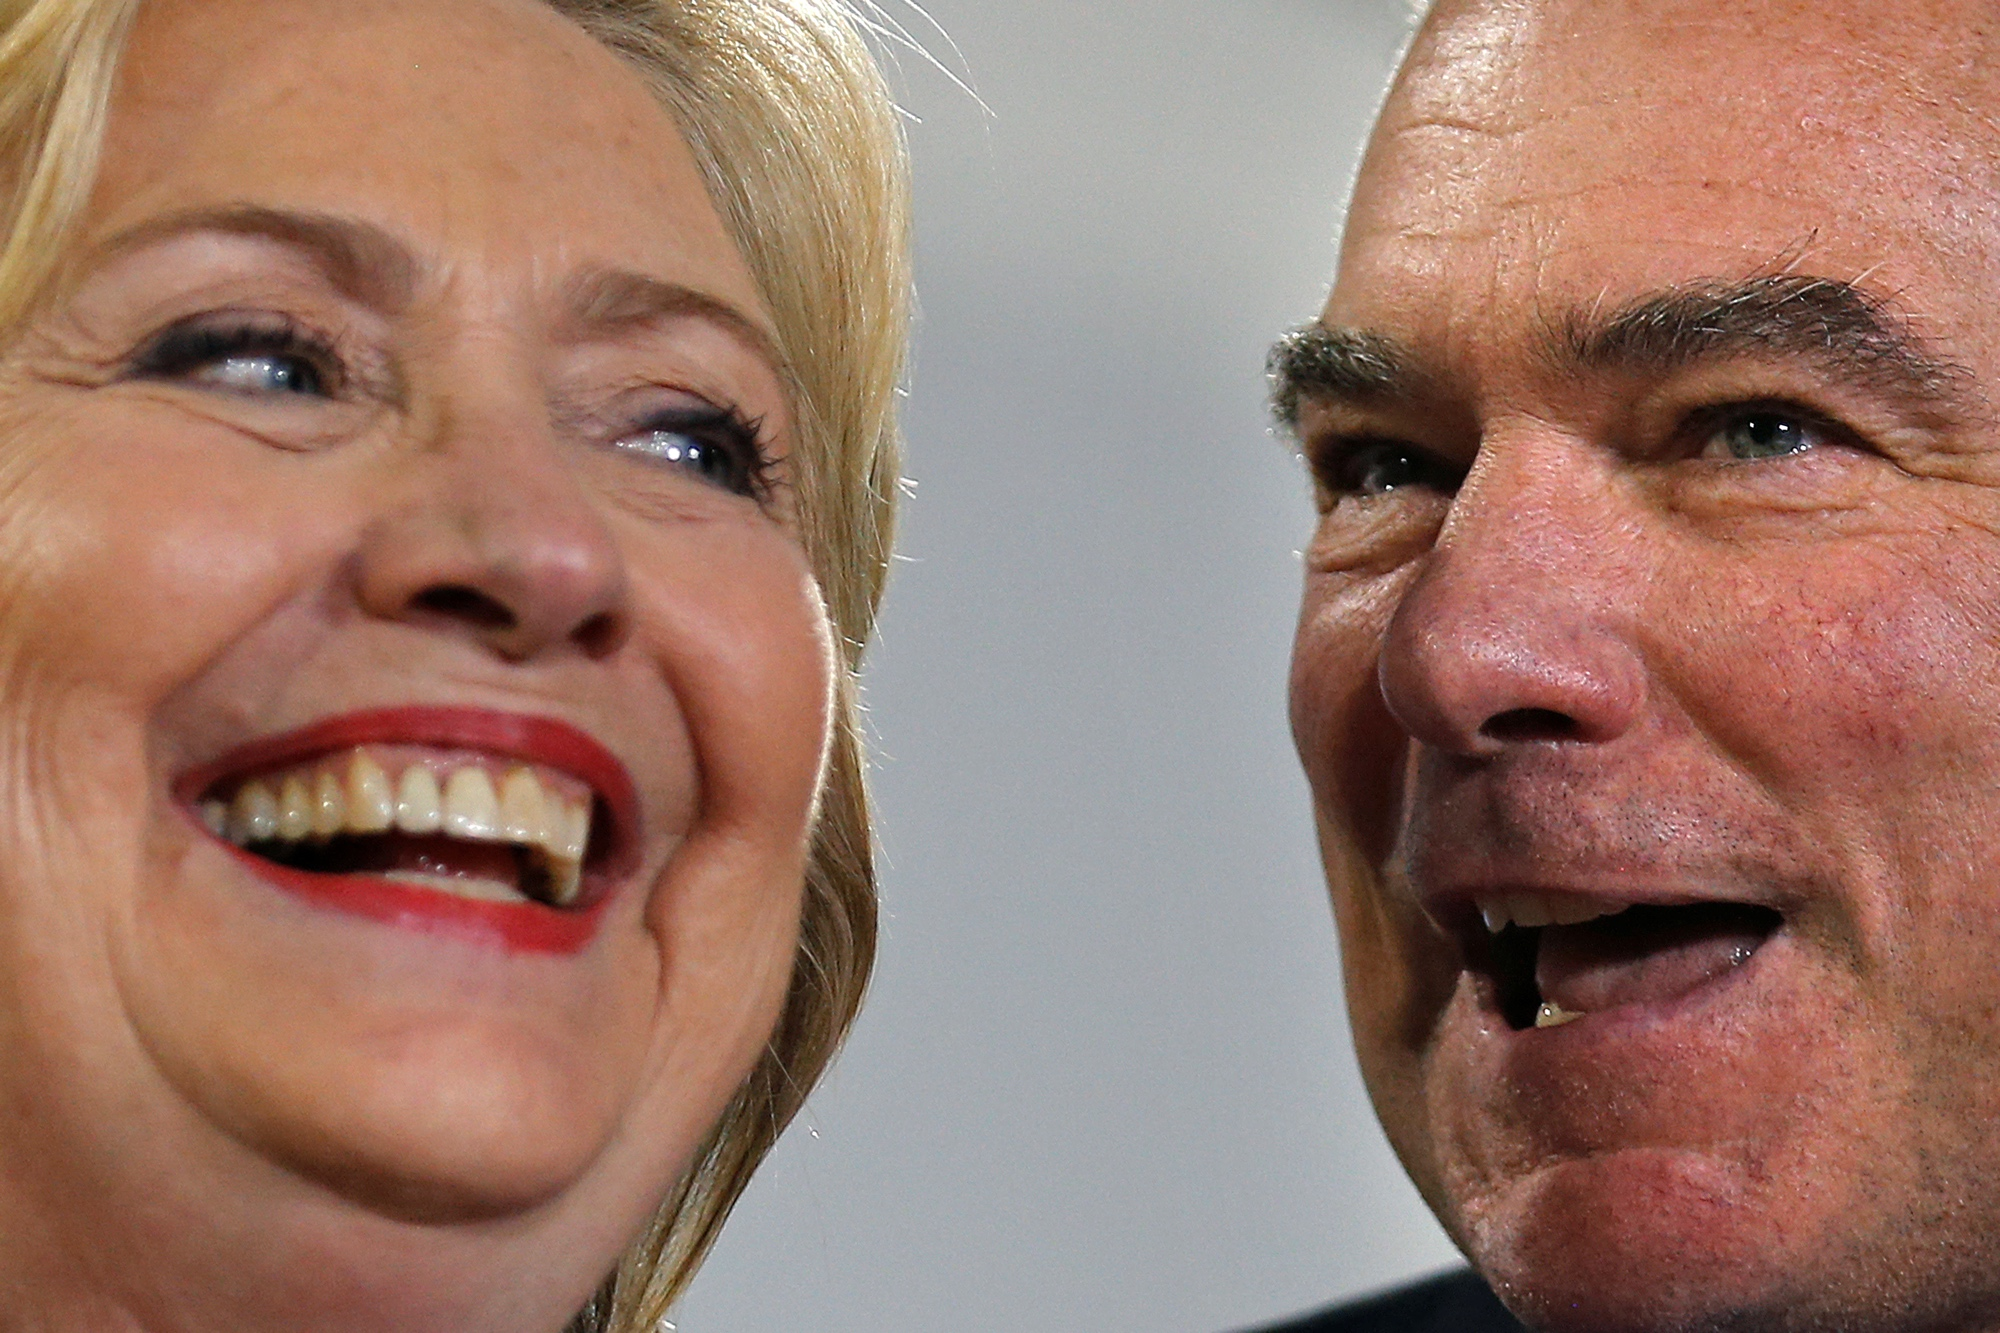 The #Veep is out: Hillary Clinton chooses Tim Kaine as Vice President